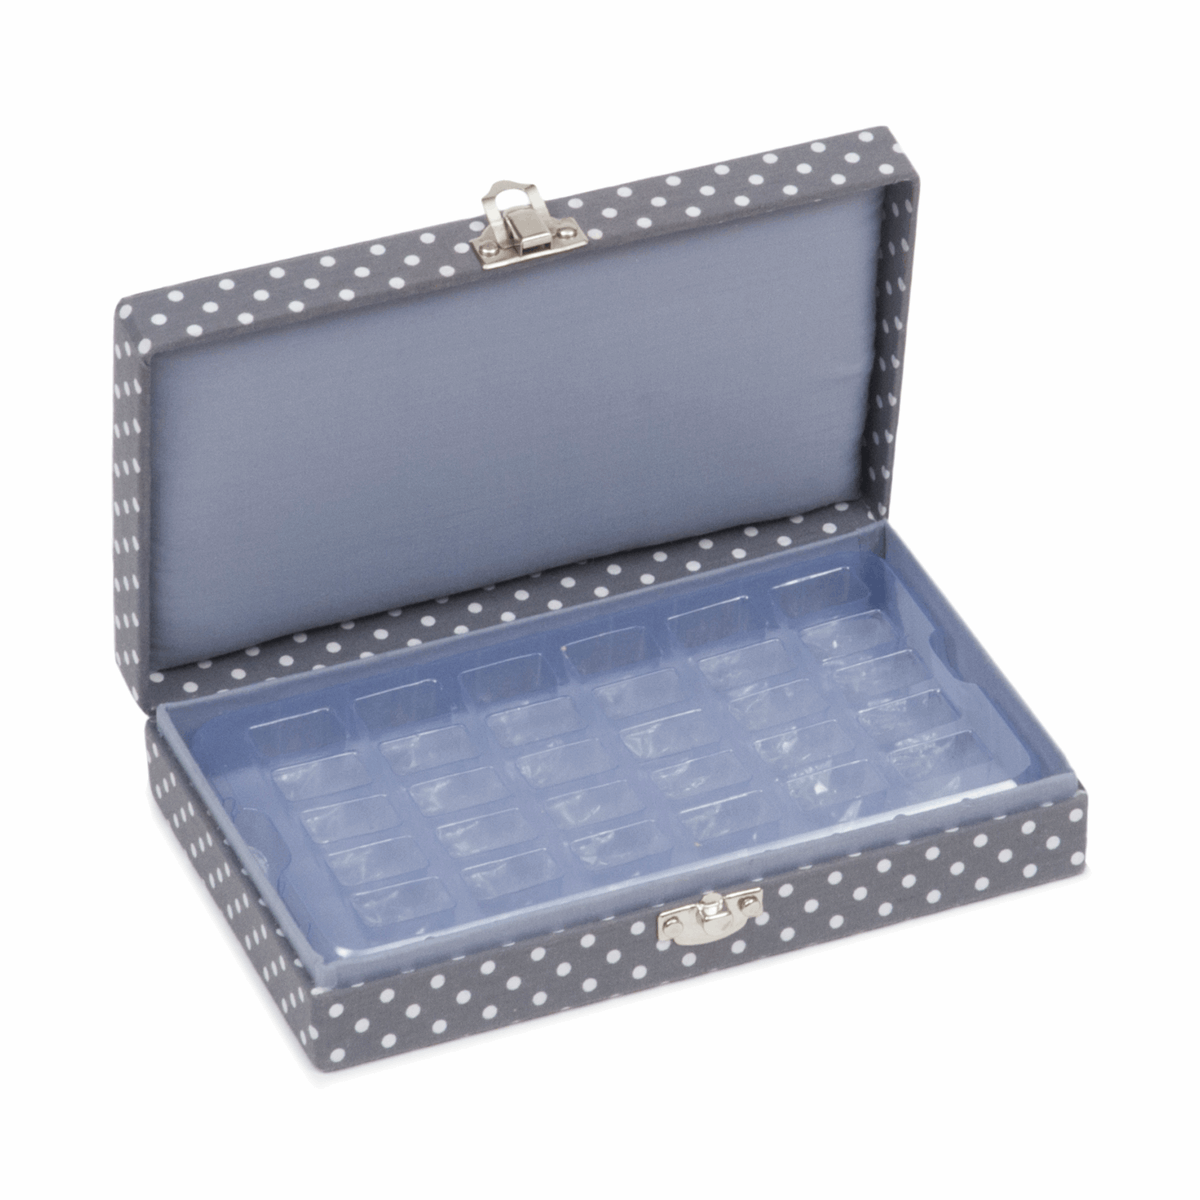 Bobbin Storage Box for 30 bobbins (Grey Spot)